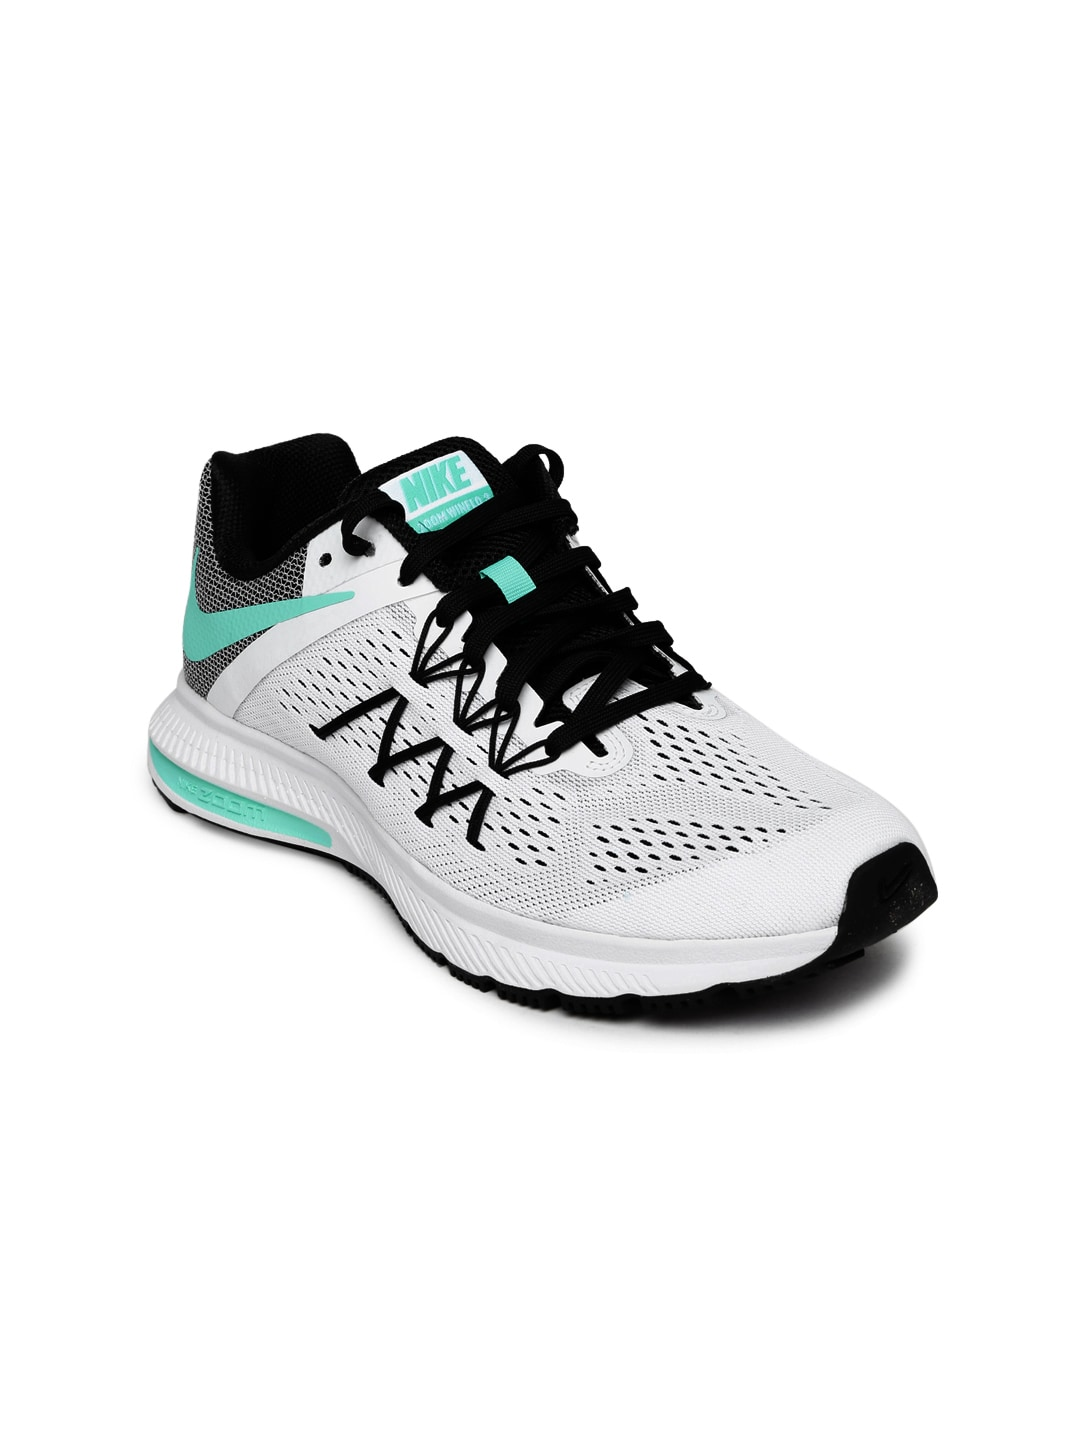 e65b1763d9c0 ... release date nike 831562 101 women white and black zoom winflo 3  running shoes price in